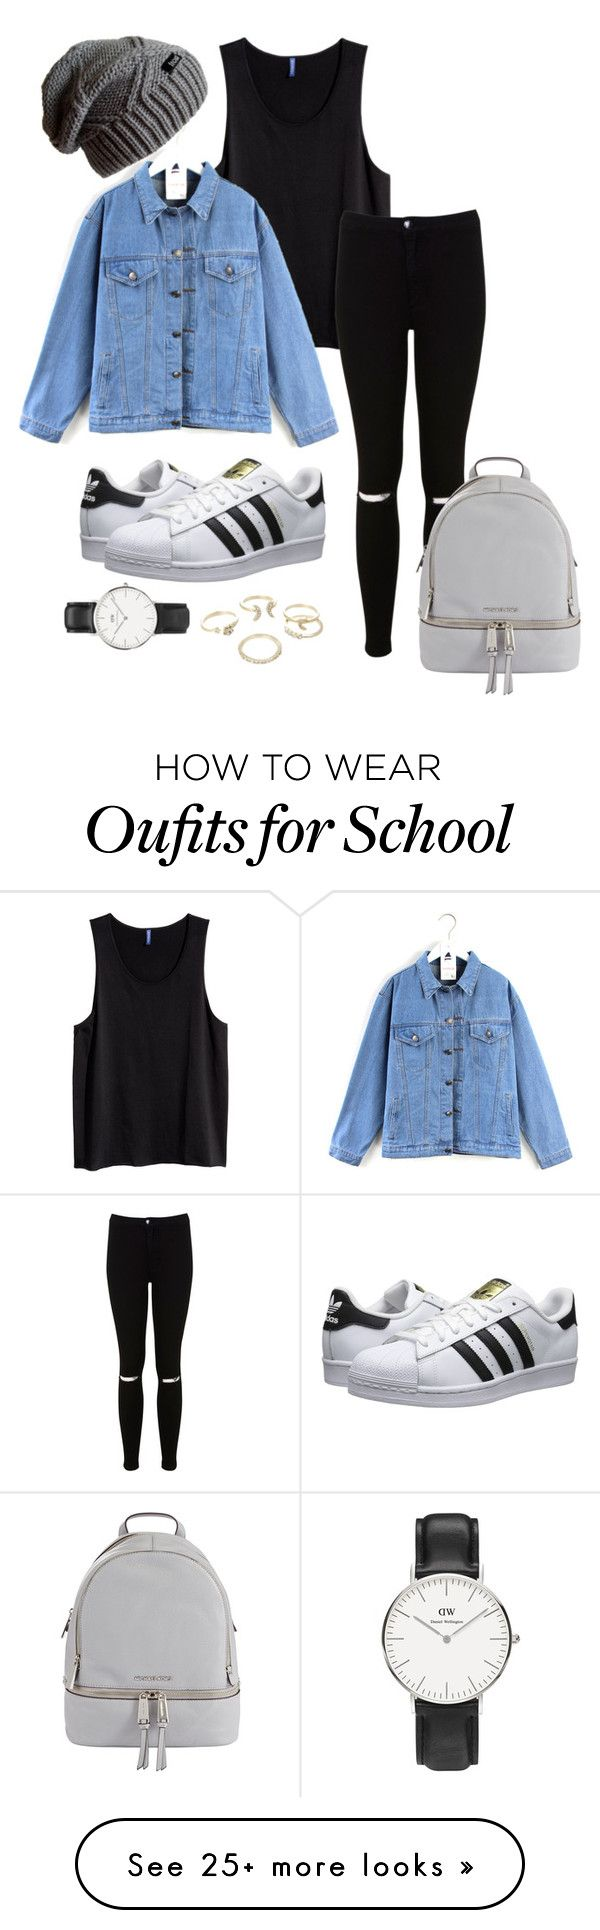 """School outfit"" by xflurox on Polyvore featuring Miss Selfridge, Quintess, adidas Originals, MICHAEL Michael Kors, Lipsy and Daniel Wellington"